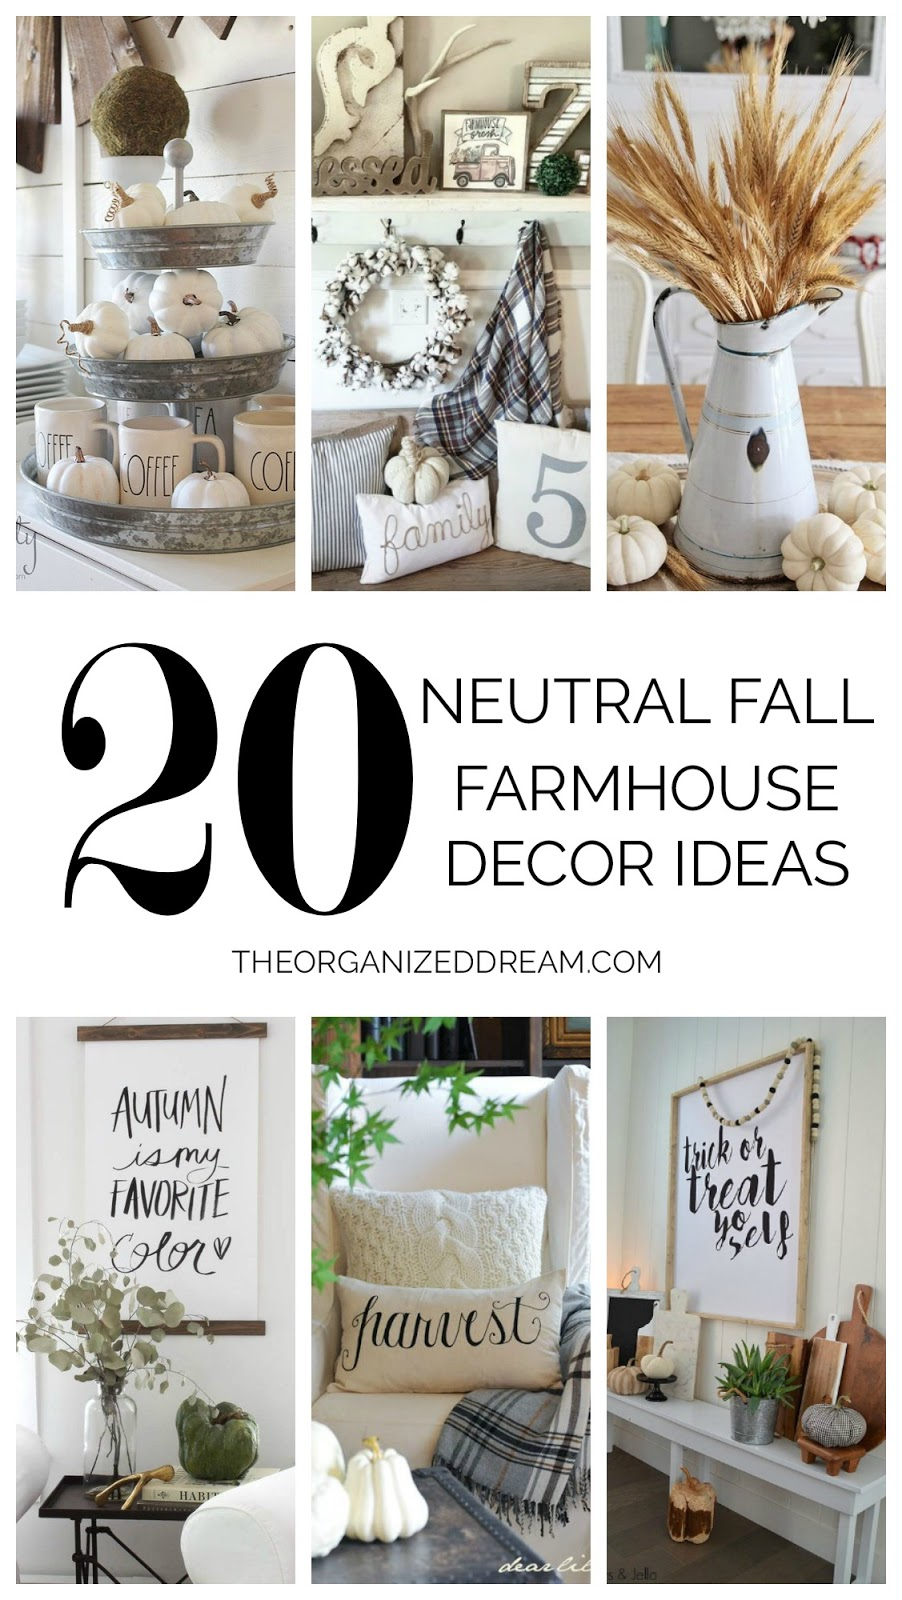 interior decor my rustic home best barnwood diy clocks blogs modern for your farmhouse ideas blog ladders